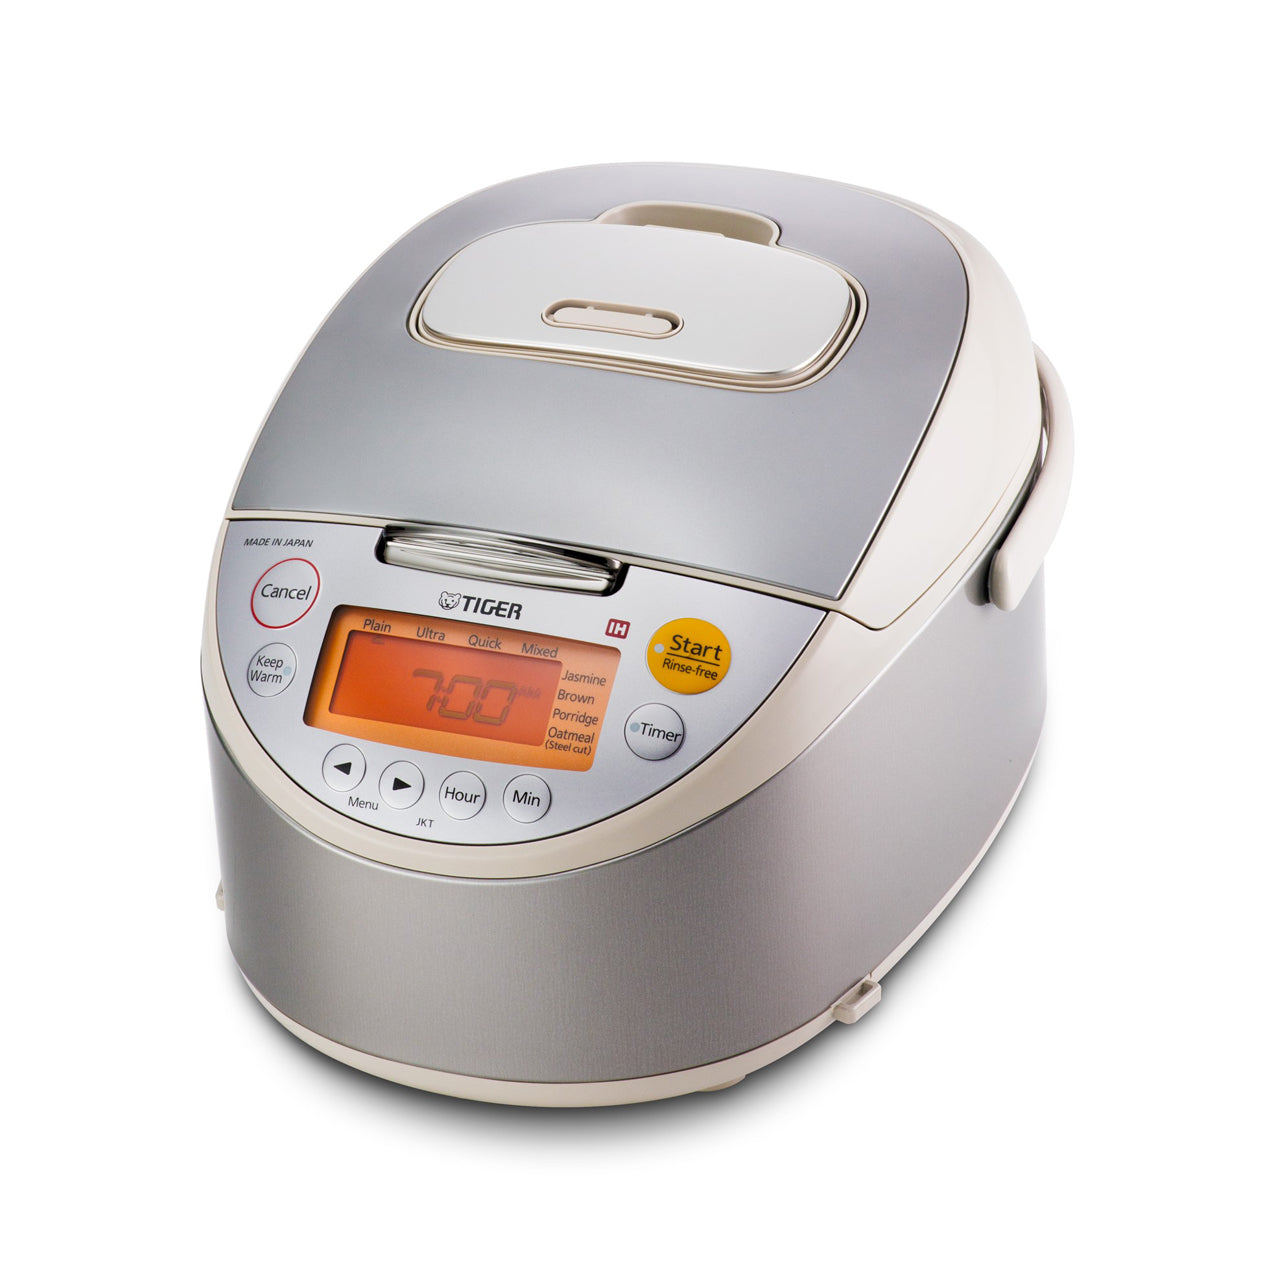 Tiger IH Stainless Steel Multi-Functional Rice Cooker (SKU: 15002)